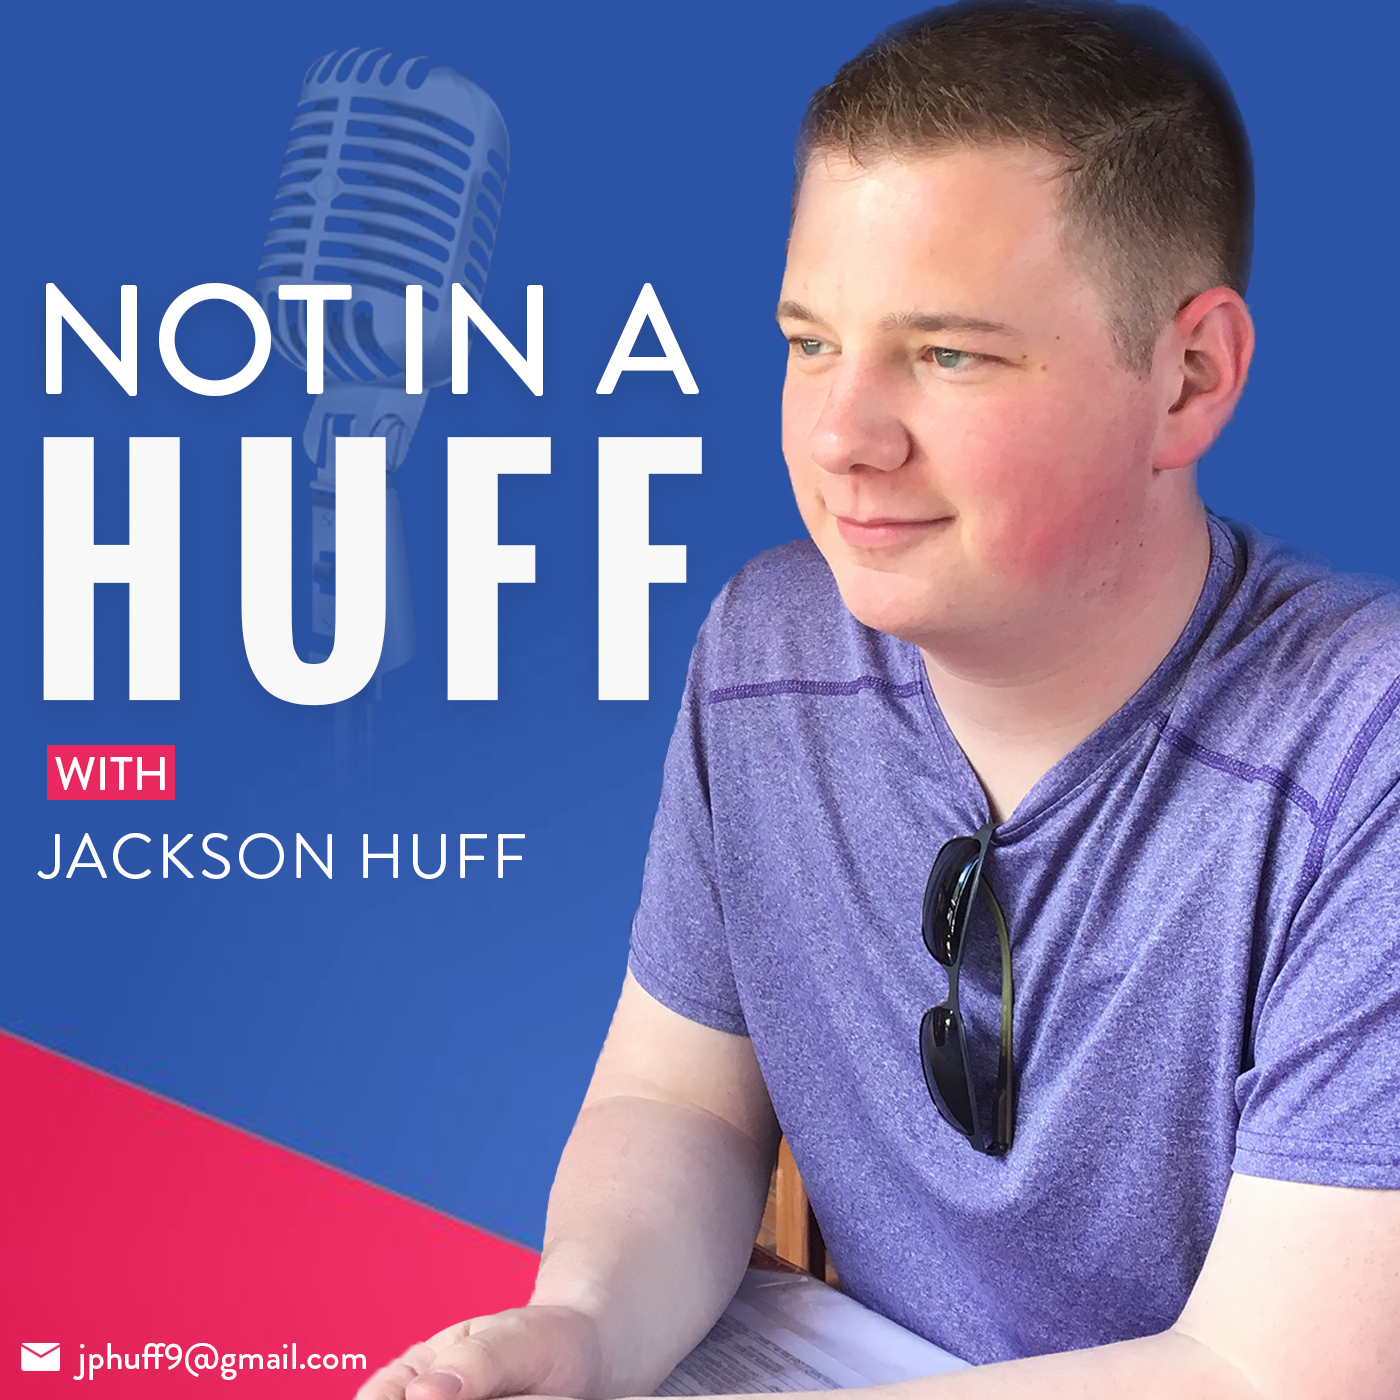 All Things Jackson Huff